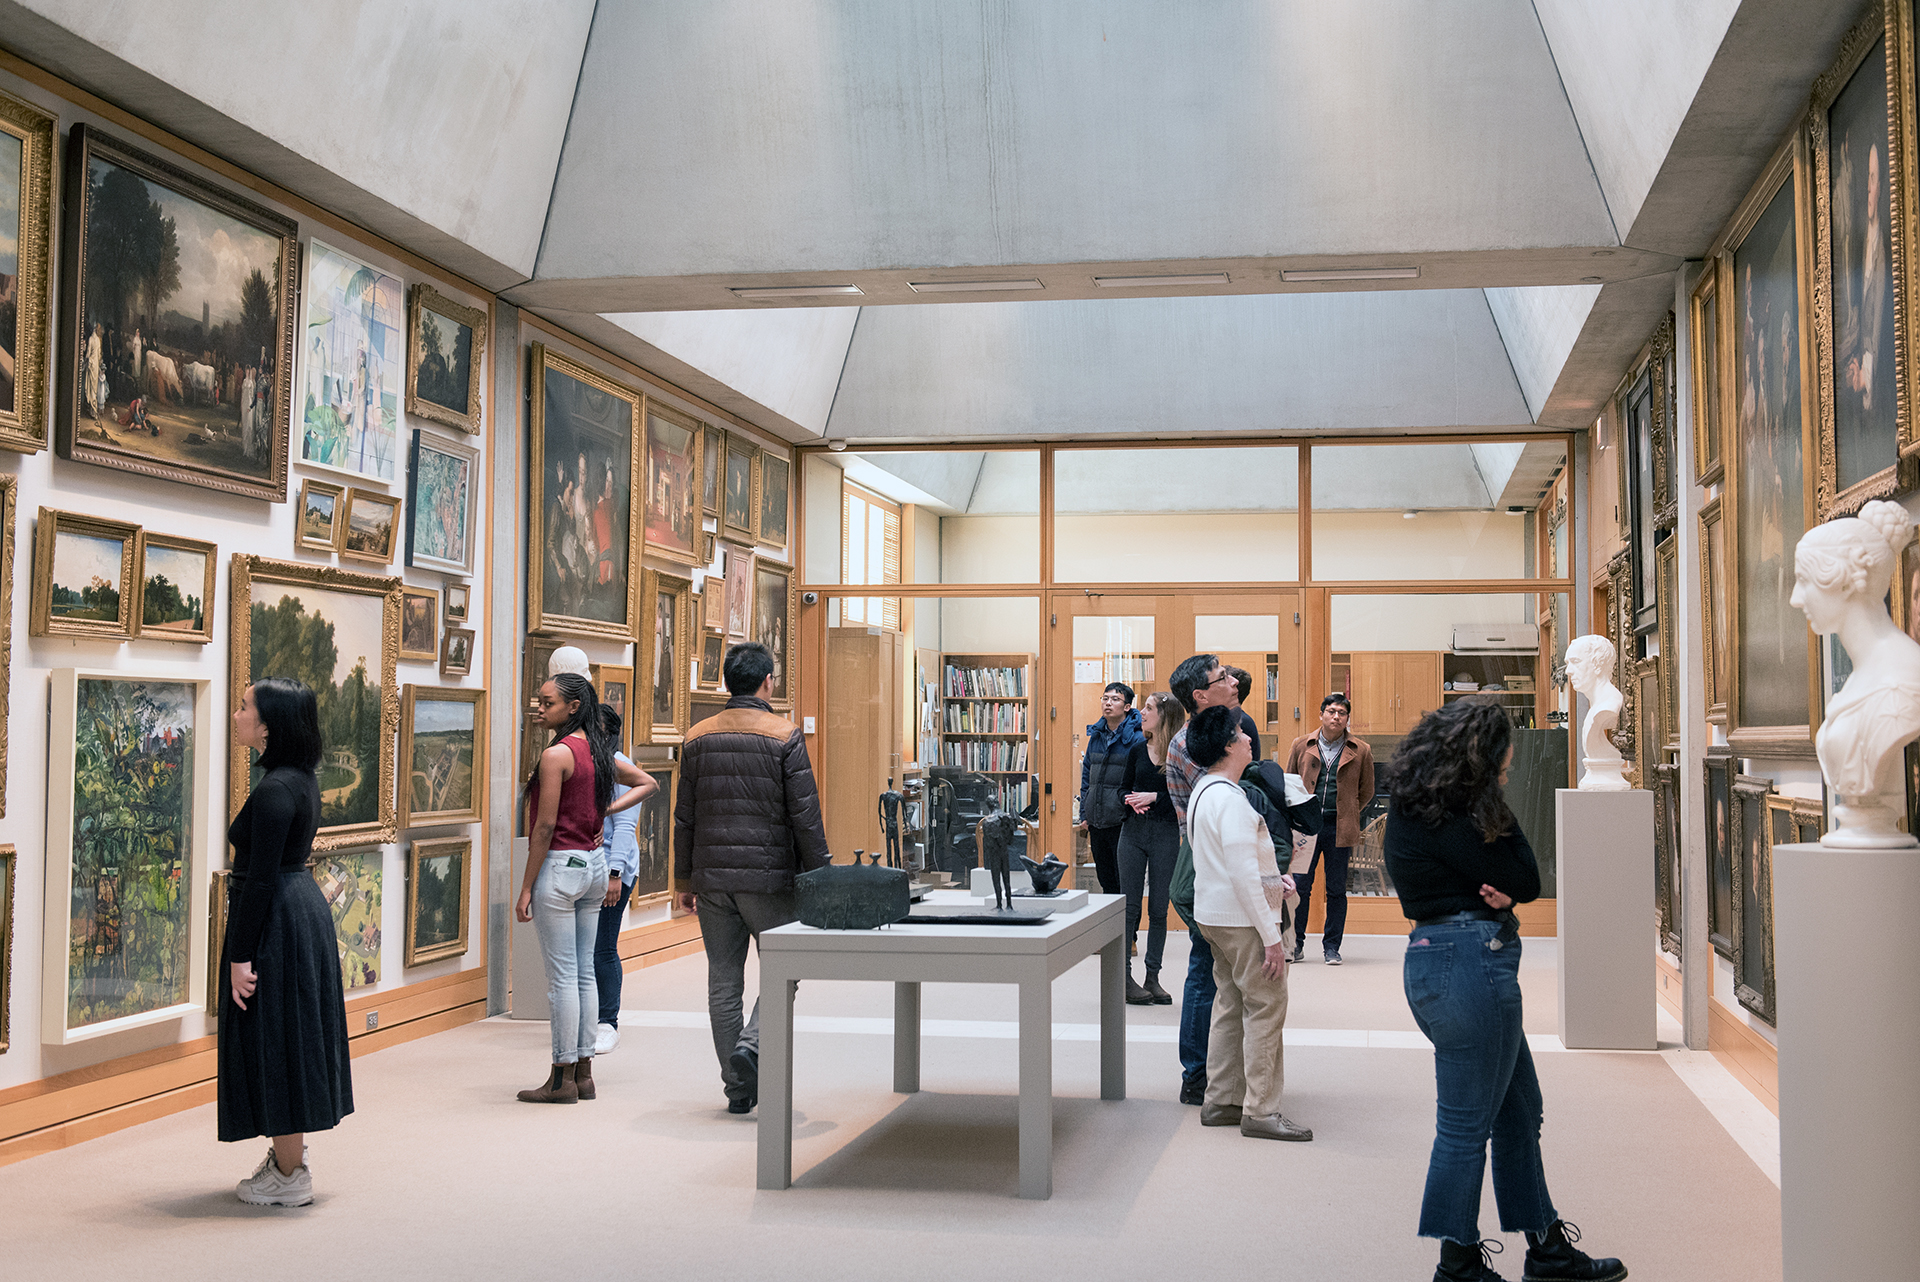 Visitors in the Long Gallery, Yale Center for British Art, photo by Stephanie Anestis